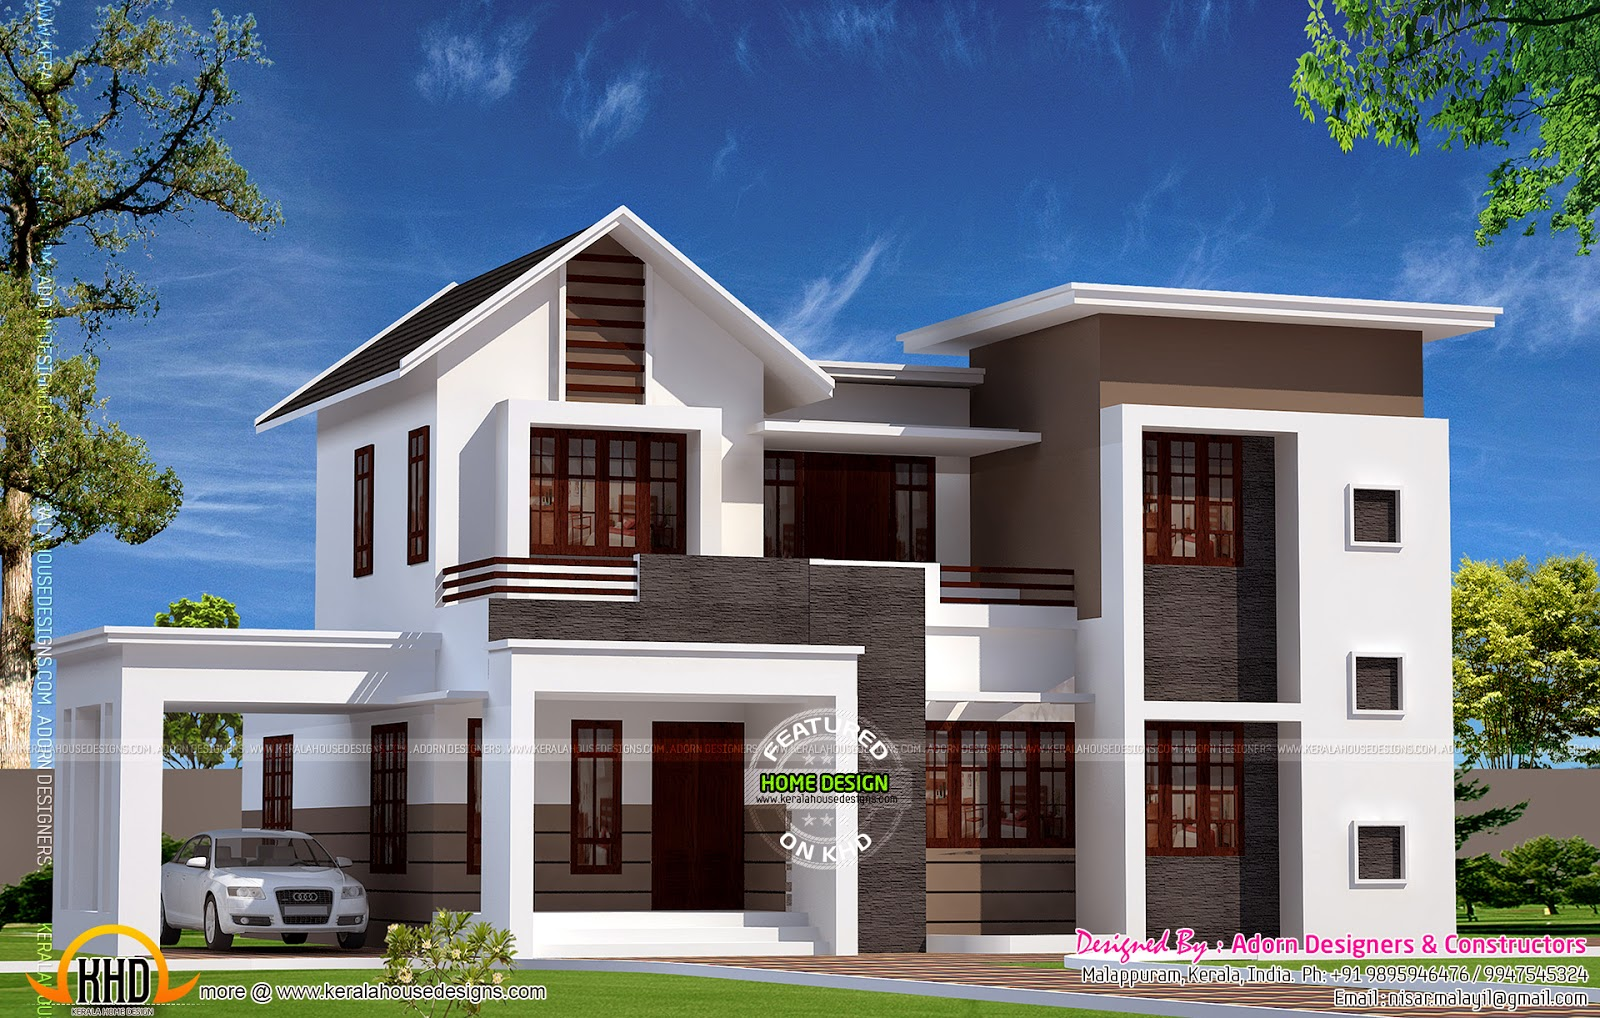 September 2014 kerala home design and floor plans - Design of home ...